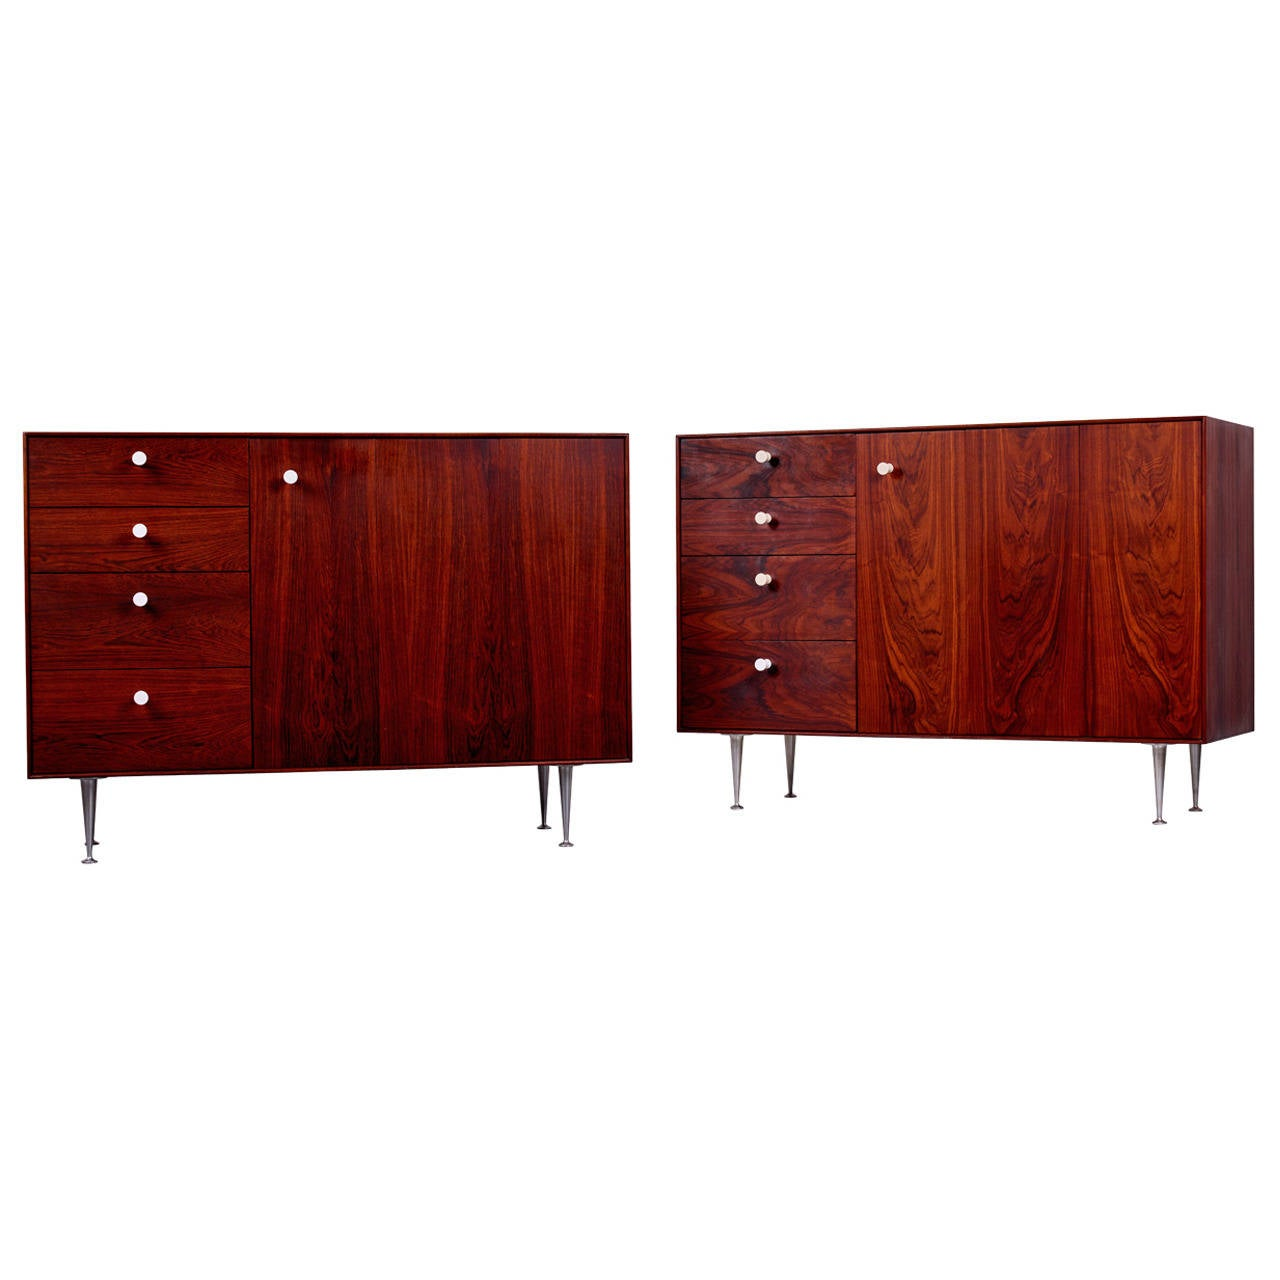 George Nelson & Associates Thin Edge Cabinets in Rosewood, 1952